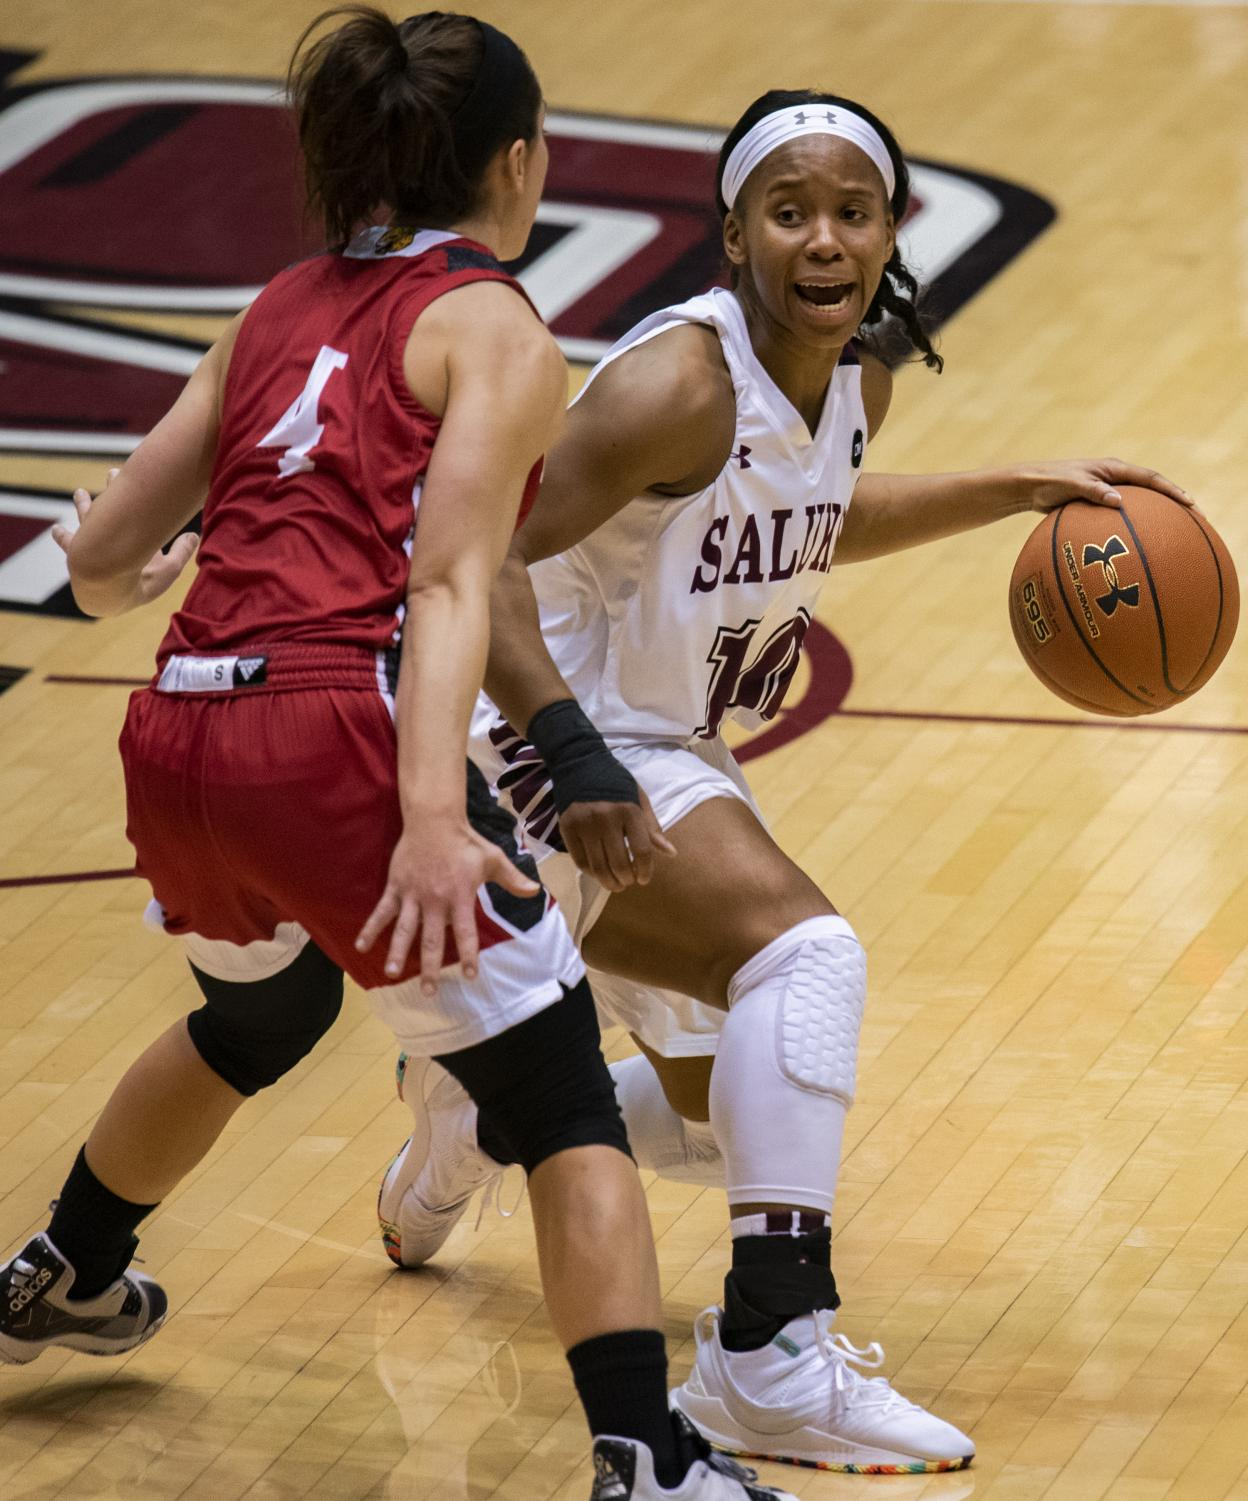 newest collection efc45 5f3d4 Gallery: Salukis battle past IUPUI in OT – Daily Egyptian